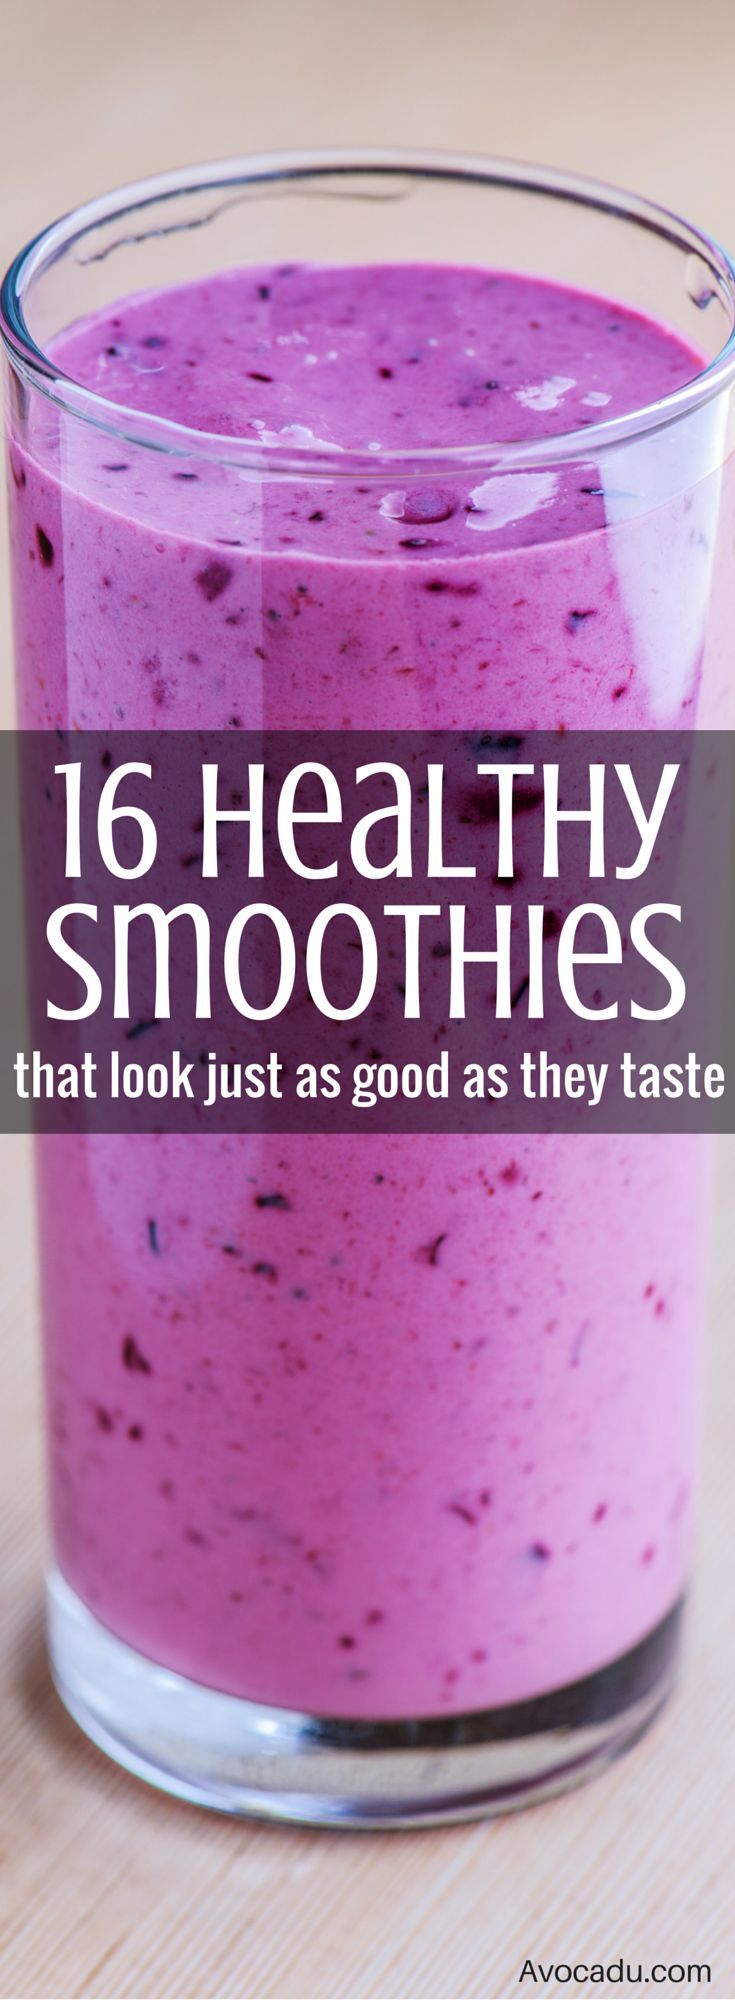 16 Healthy Smoothies That Look As Good As They Taste | Healthy Smoothie Recipes | avocadu.com/16-healthy-smoothies-that-look-just-as-good-as-they-taste/ healthyrecipecoll...